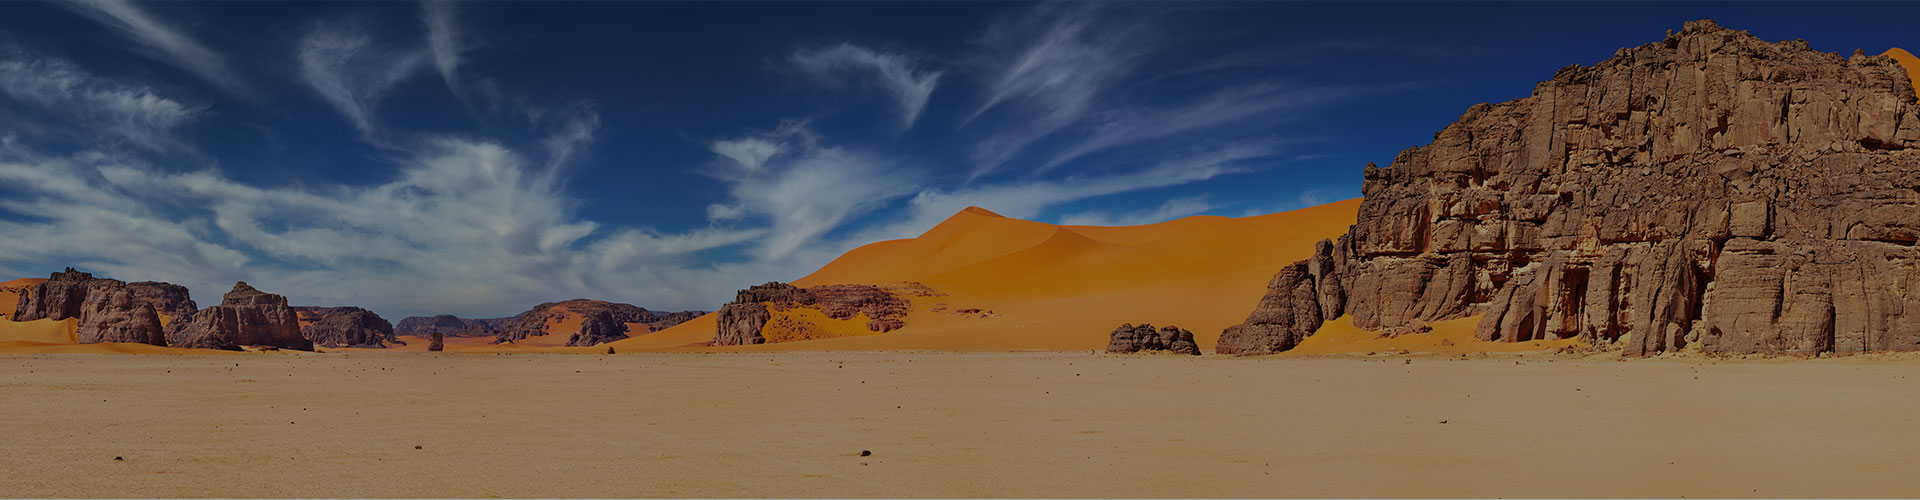 Landmark photograph of Algeria